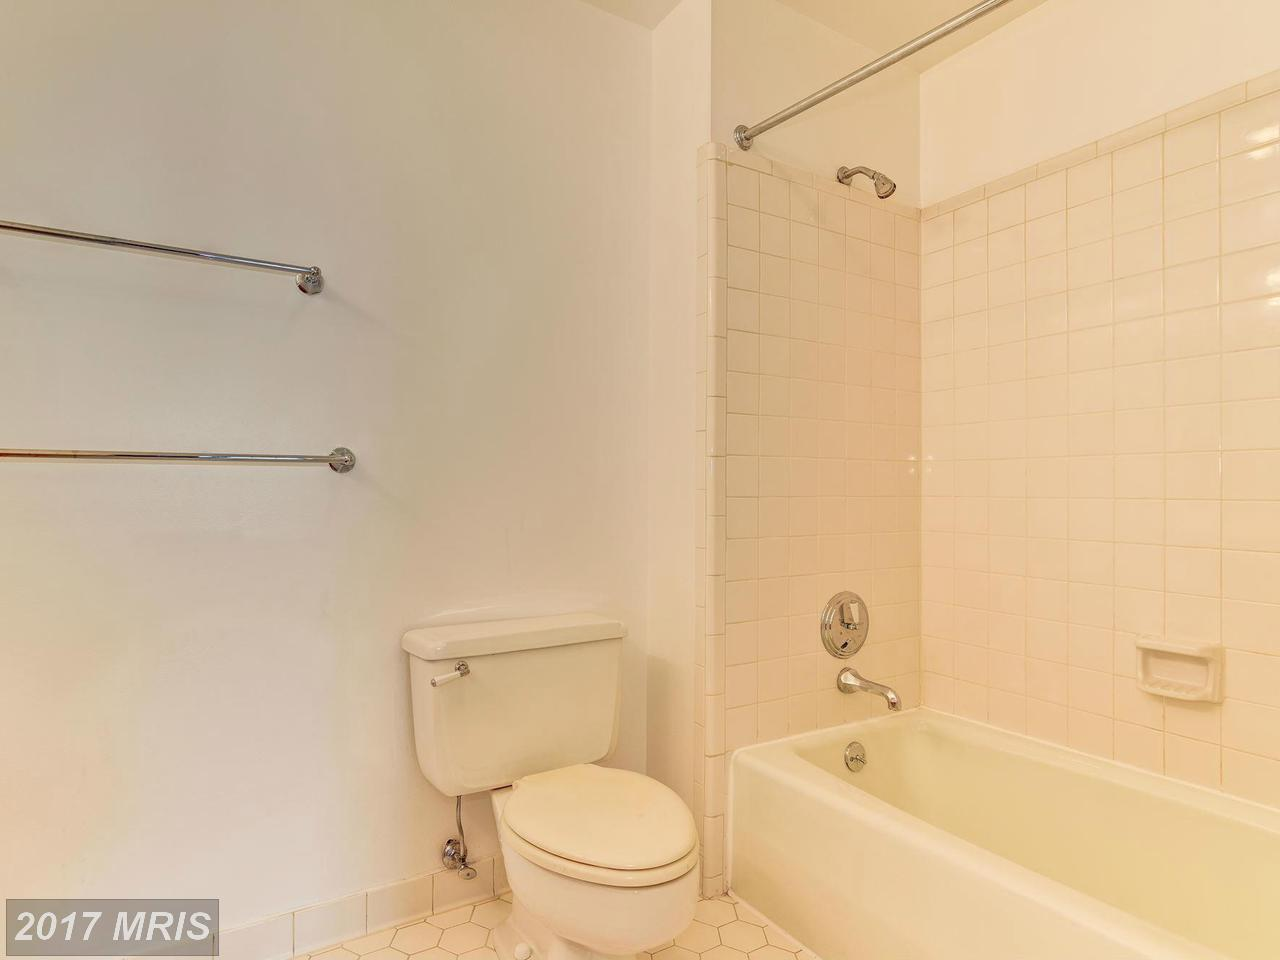 Additional photo for property listing at Colonial, Attach/Row Hse - WASHINGTON, DC 4211 48TH PL NW Washington, District Of Columbia,20016 United States